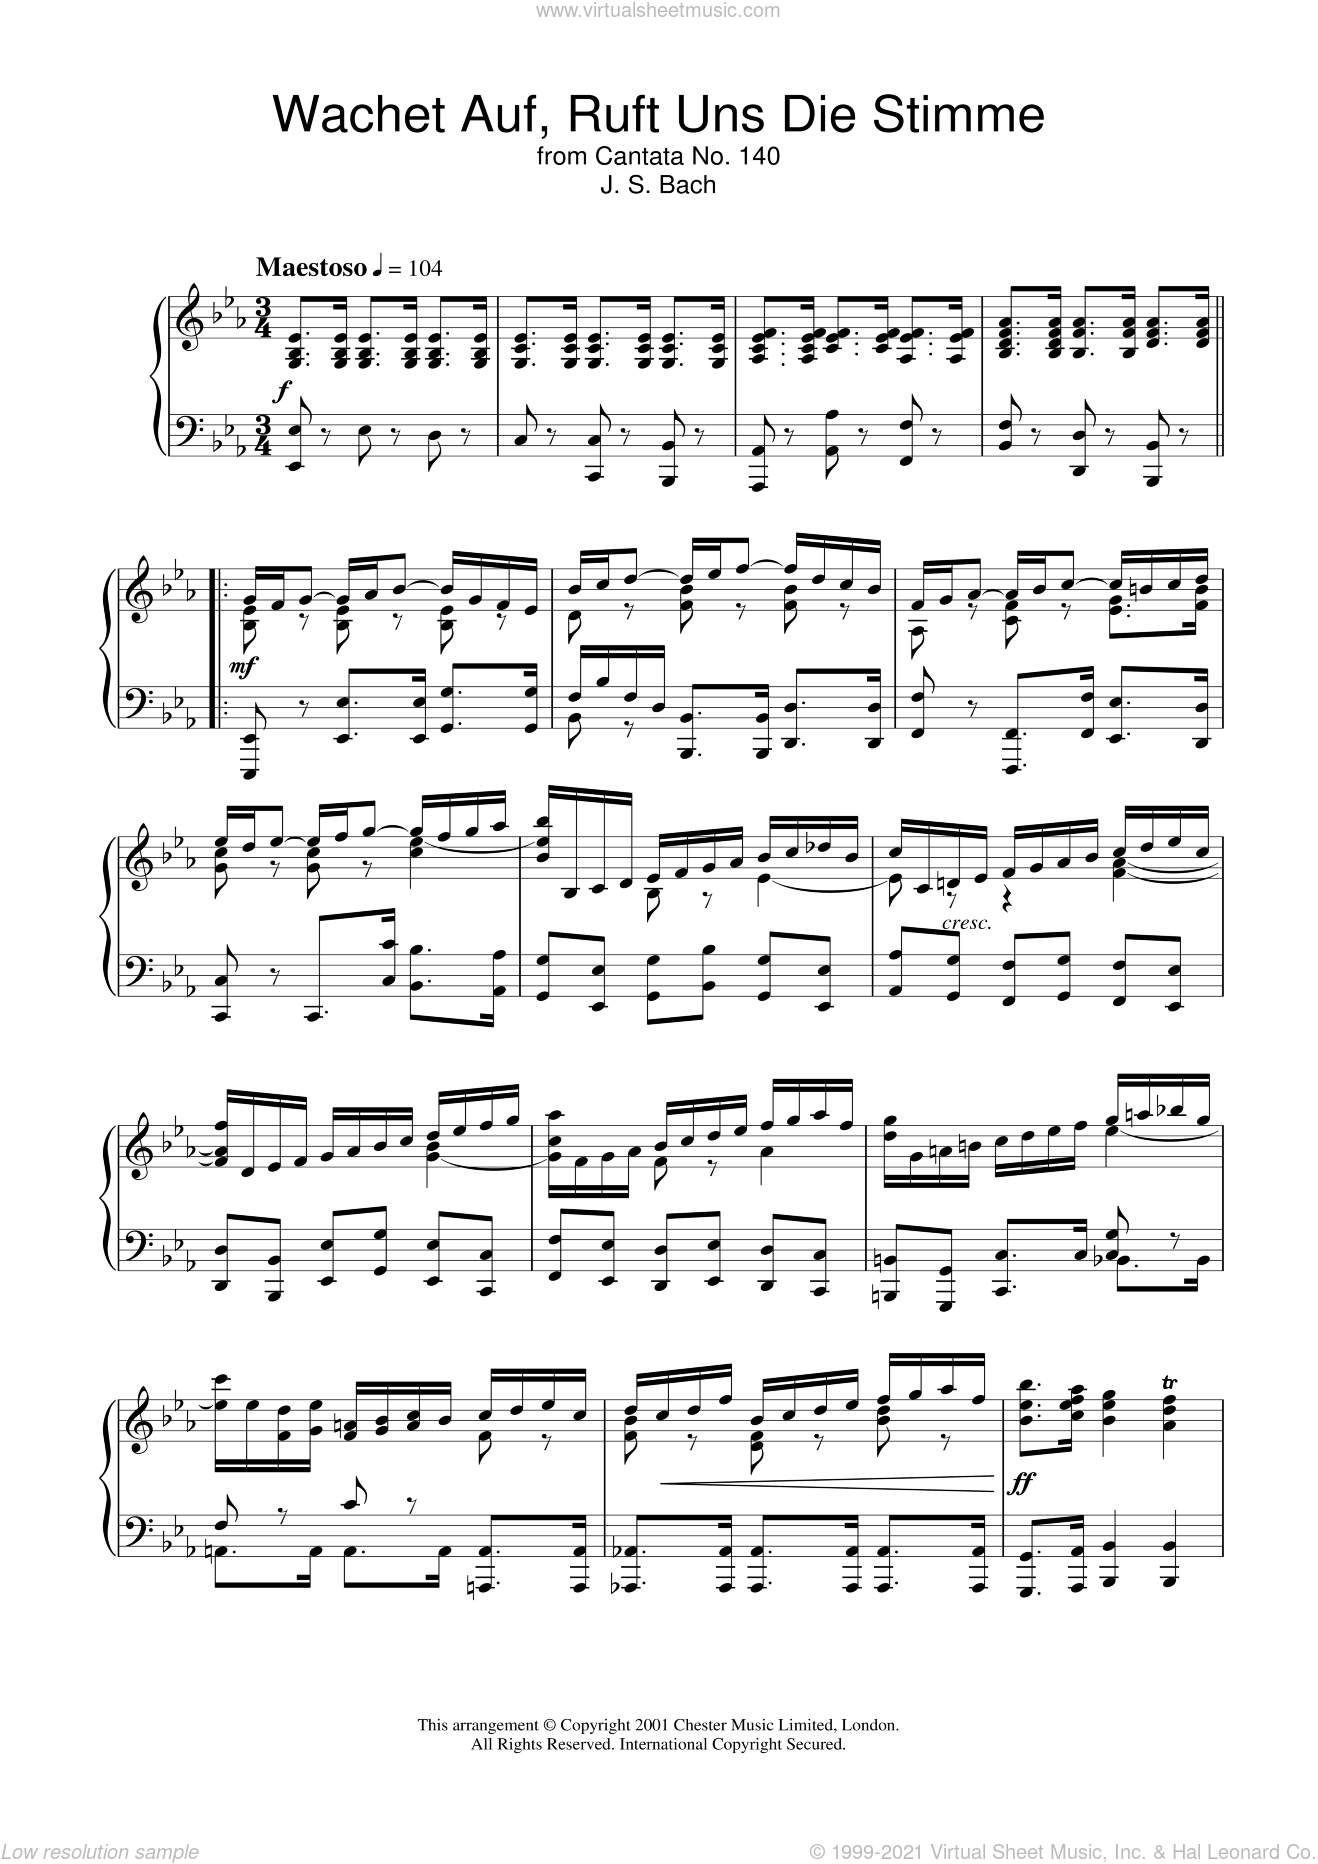 Wachet Auf, Ruft Uns Die Stimme (from Cantata No. 140) sheet music for piano solo by Johann Sebastian Bach, classical score, intermediate piano. Score Image Preview.